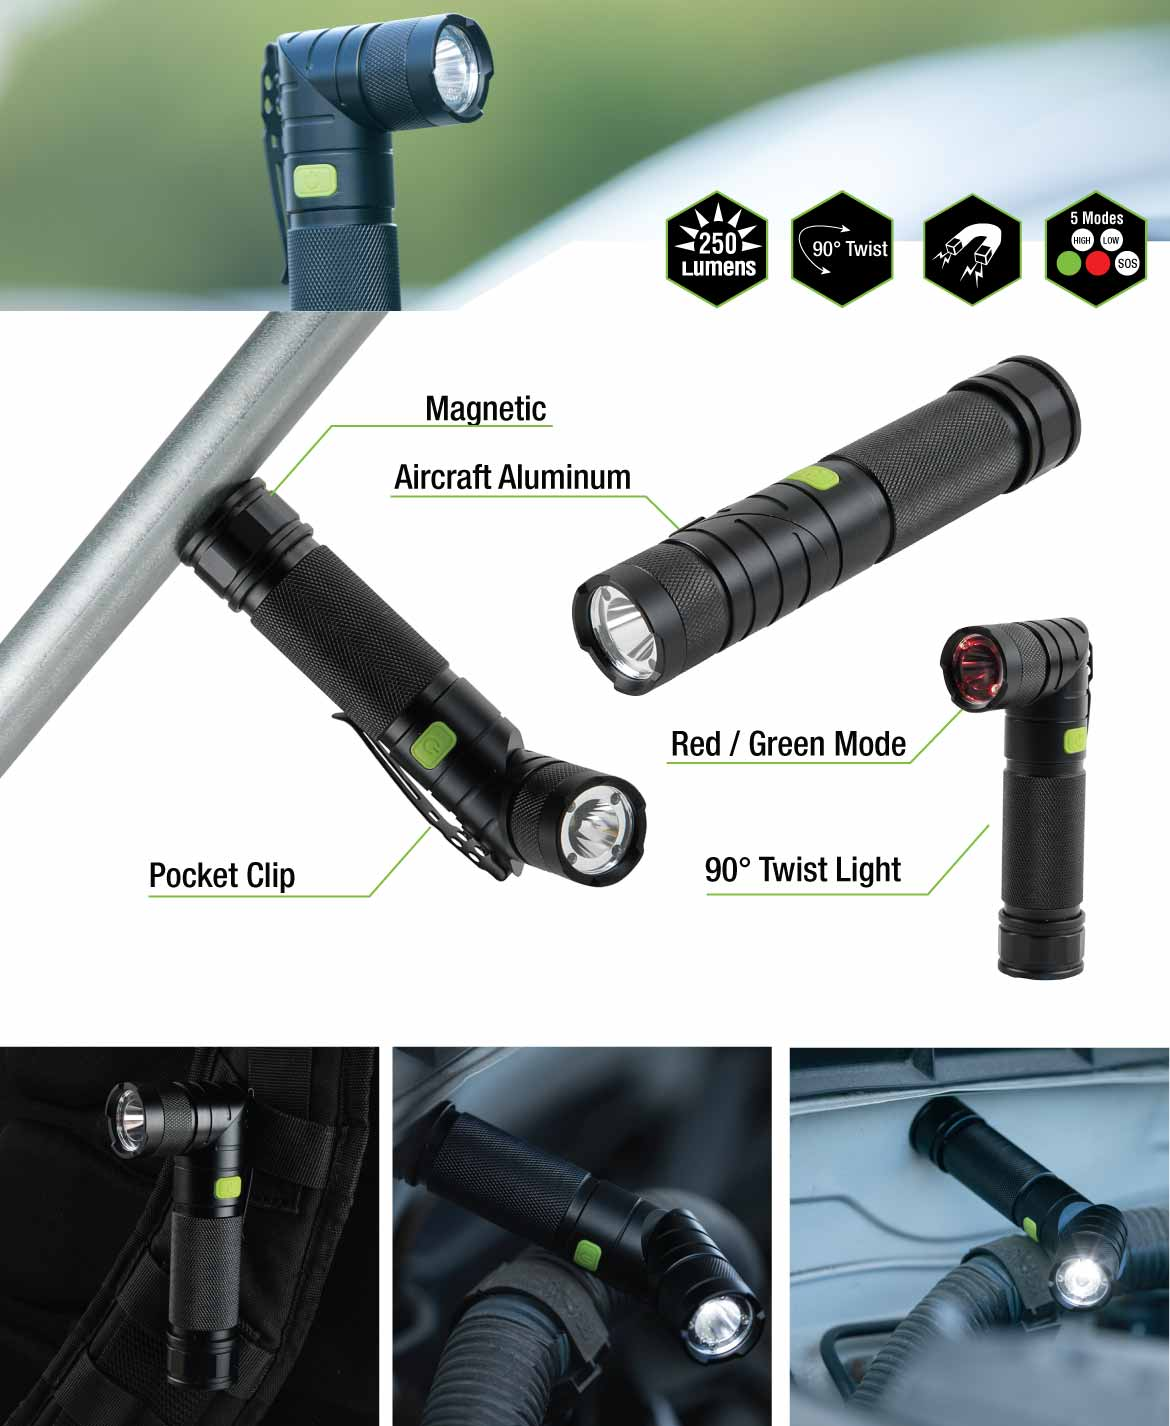 Extra features of the Blackfire Twist Magnetic Flashlight